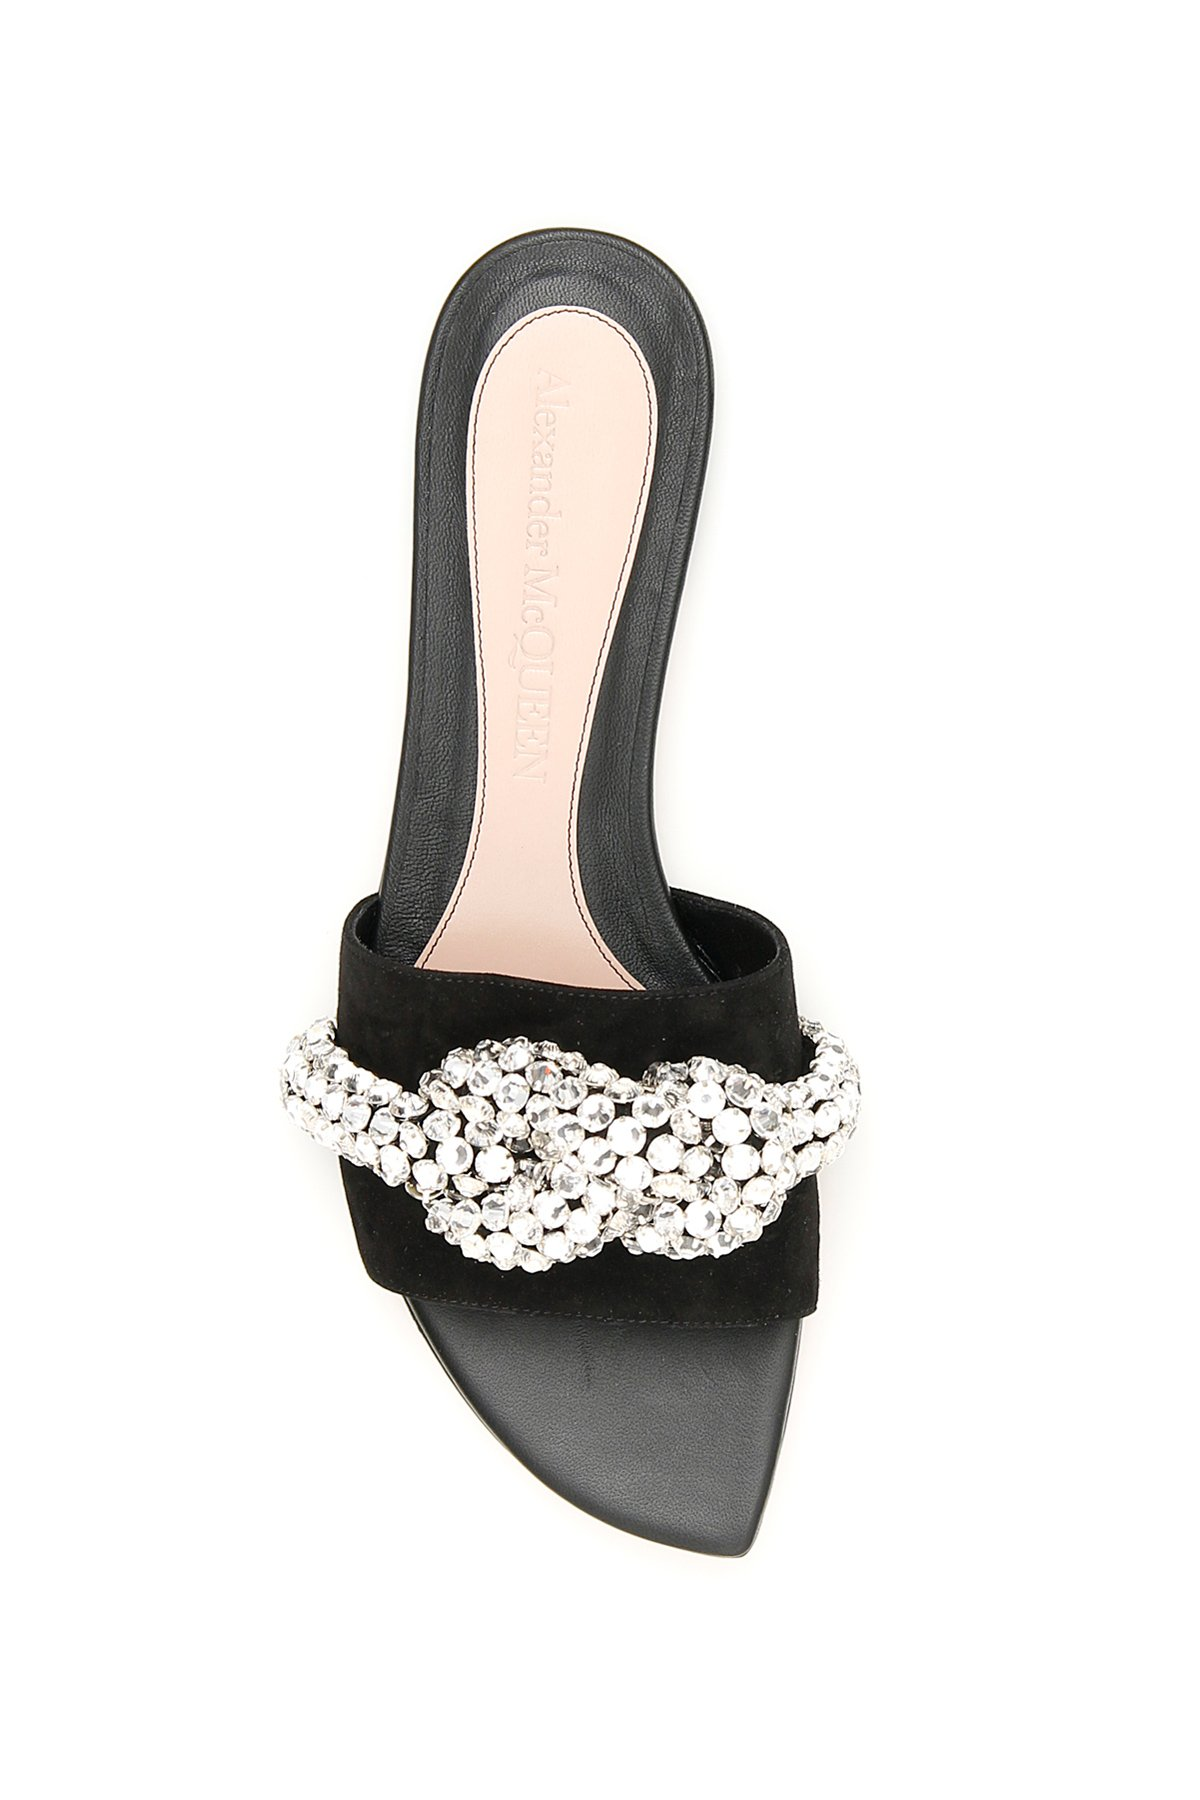 Alexander mcqueen mules crystal knot